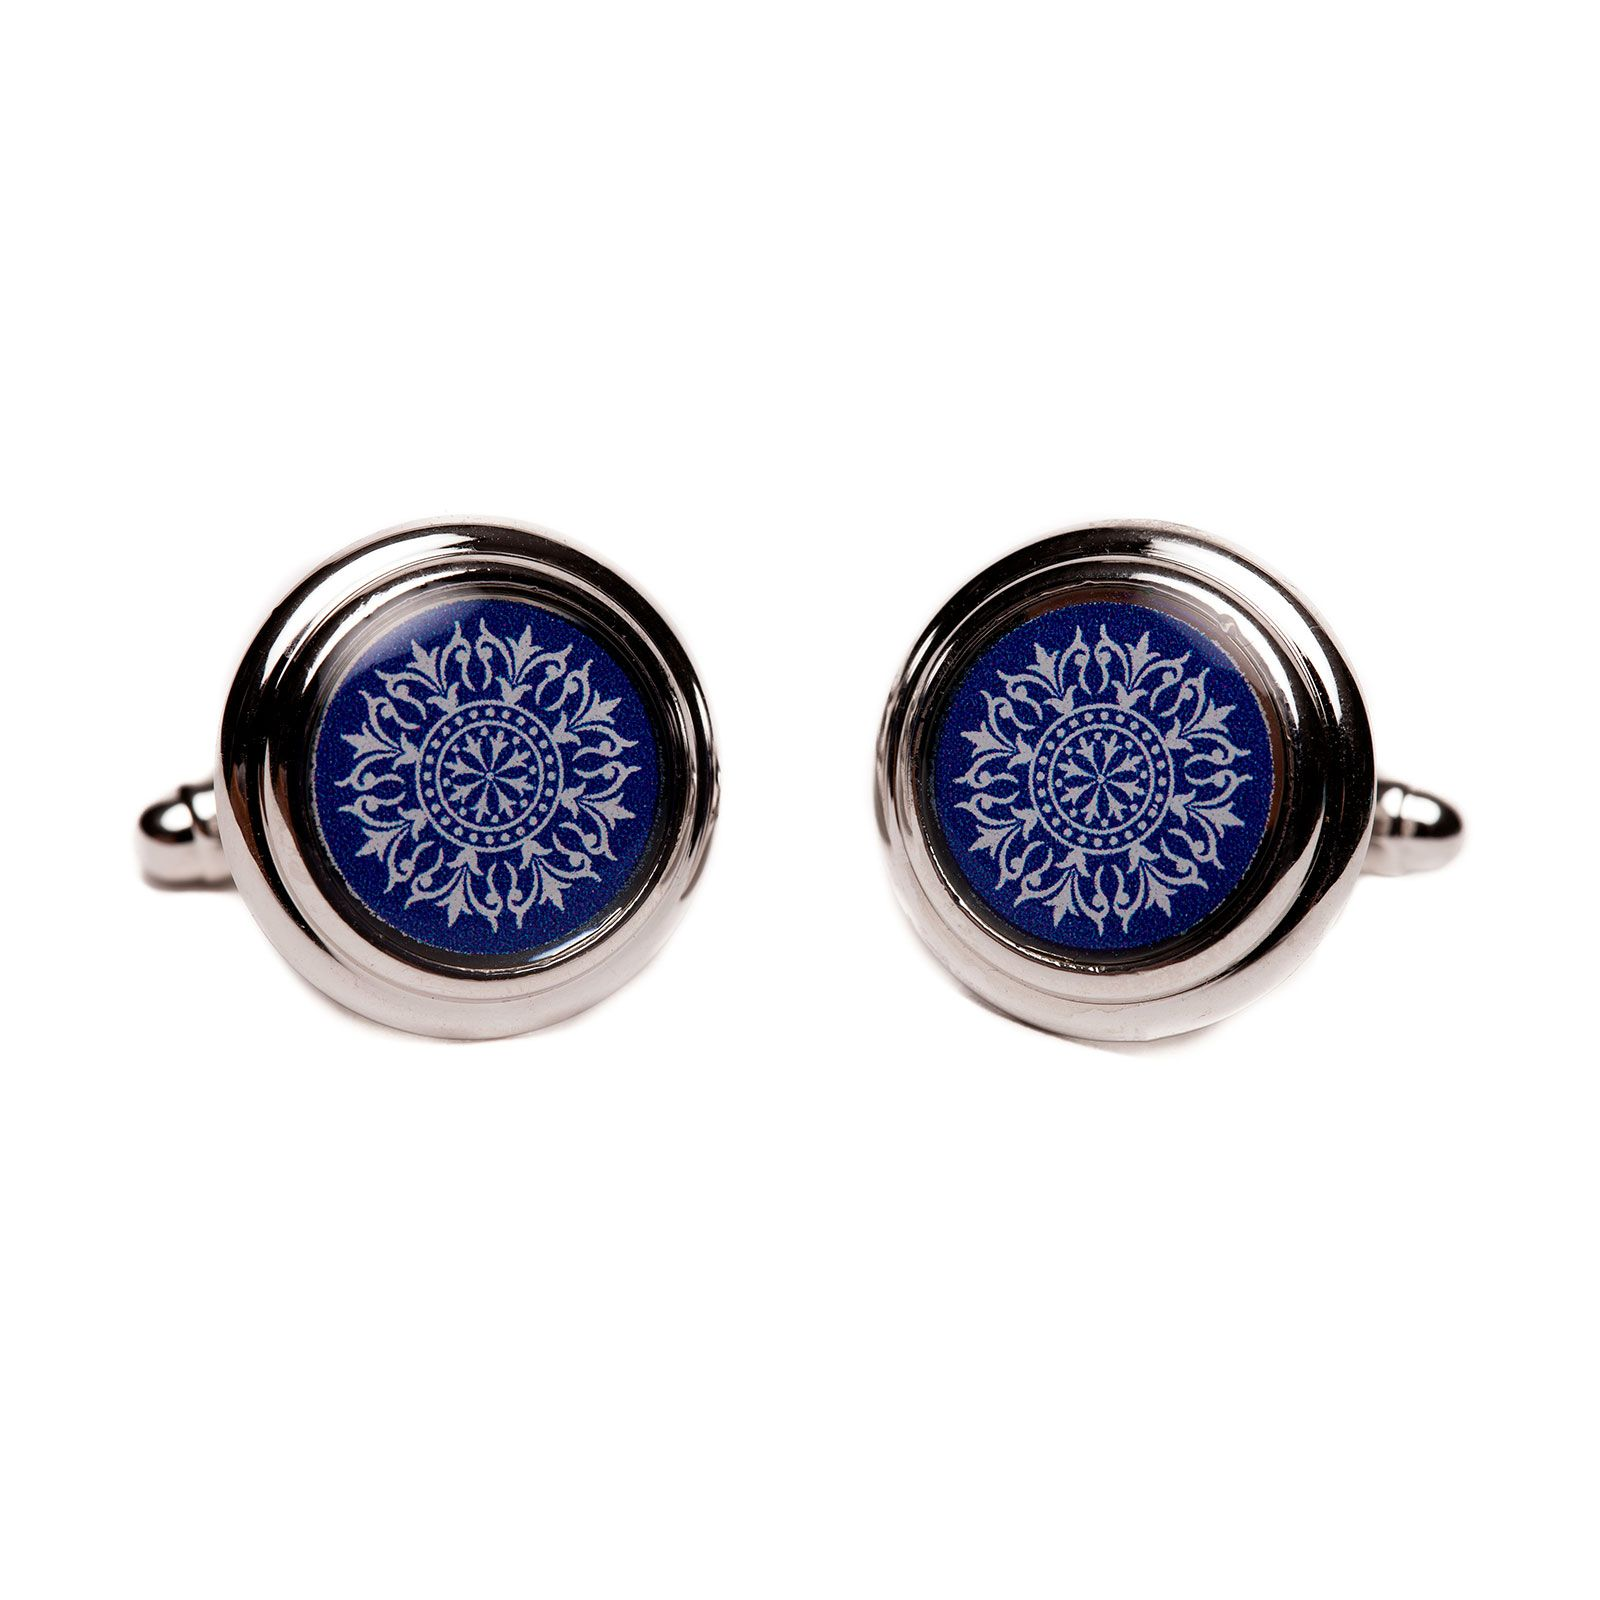 Oculus Silver Plated Cufflinks